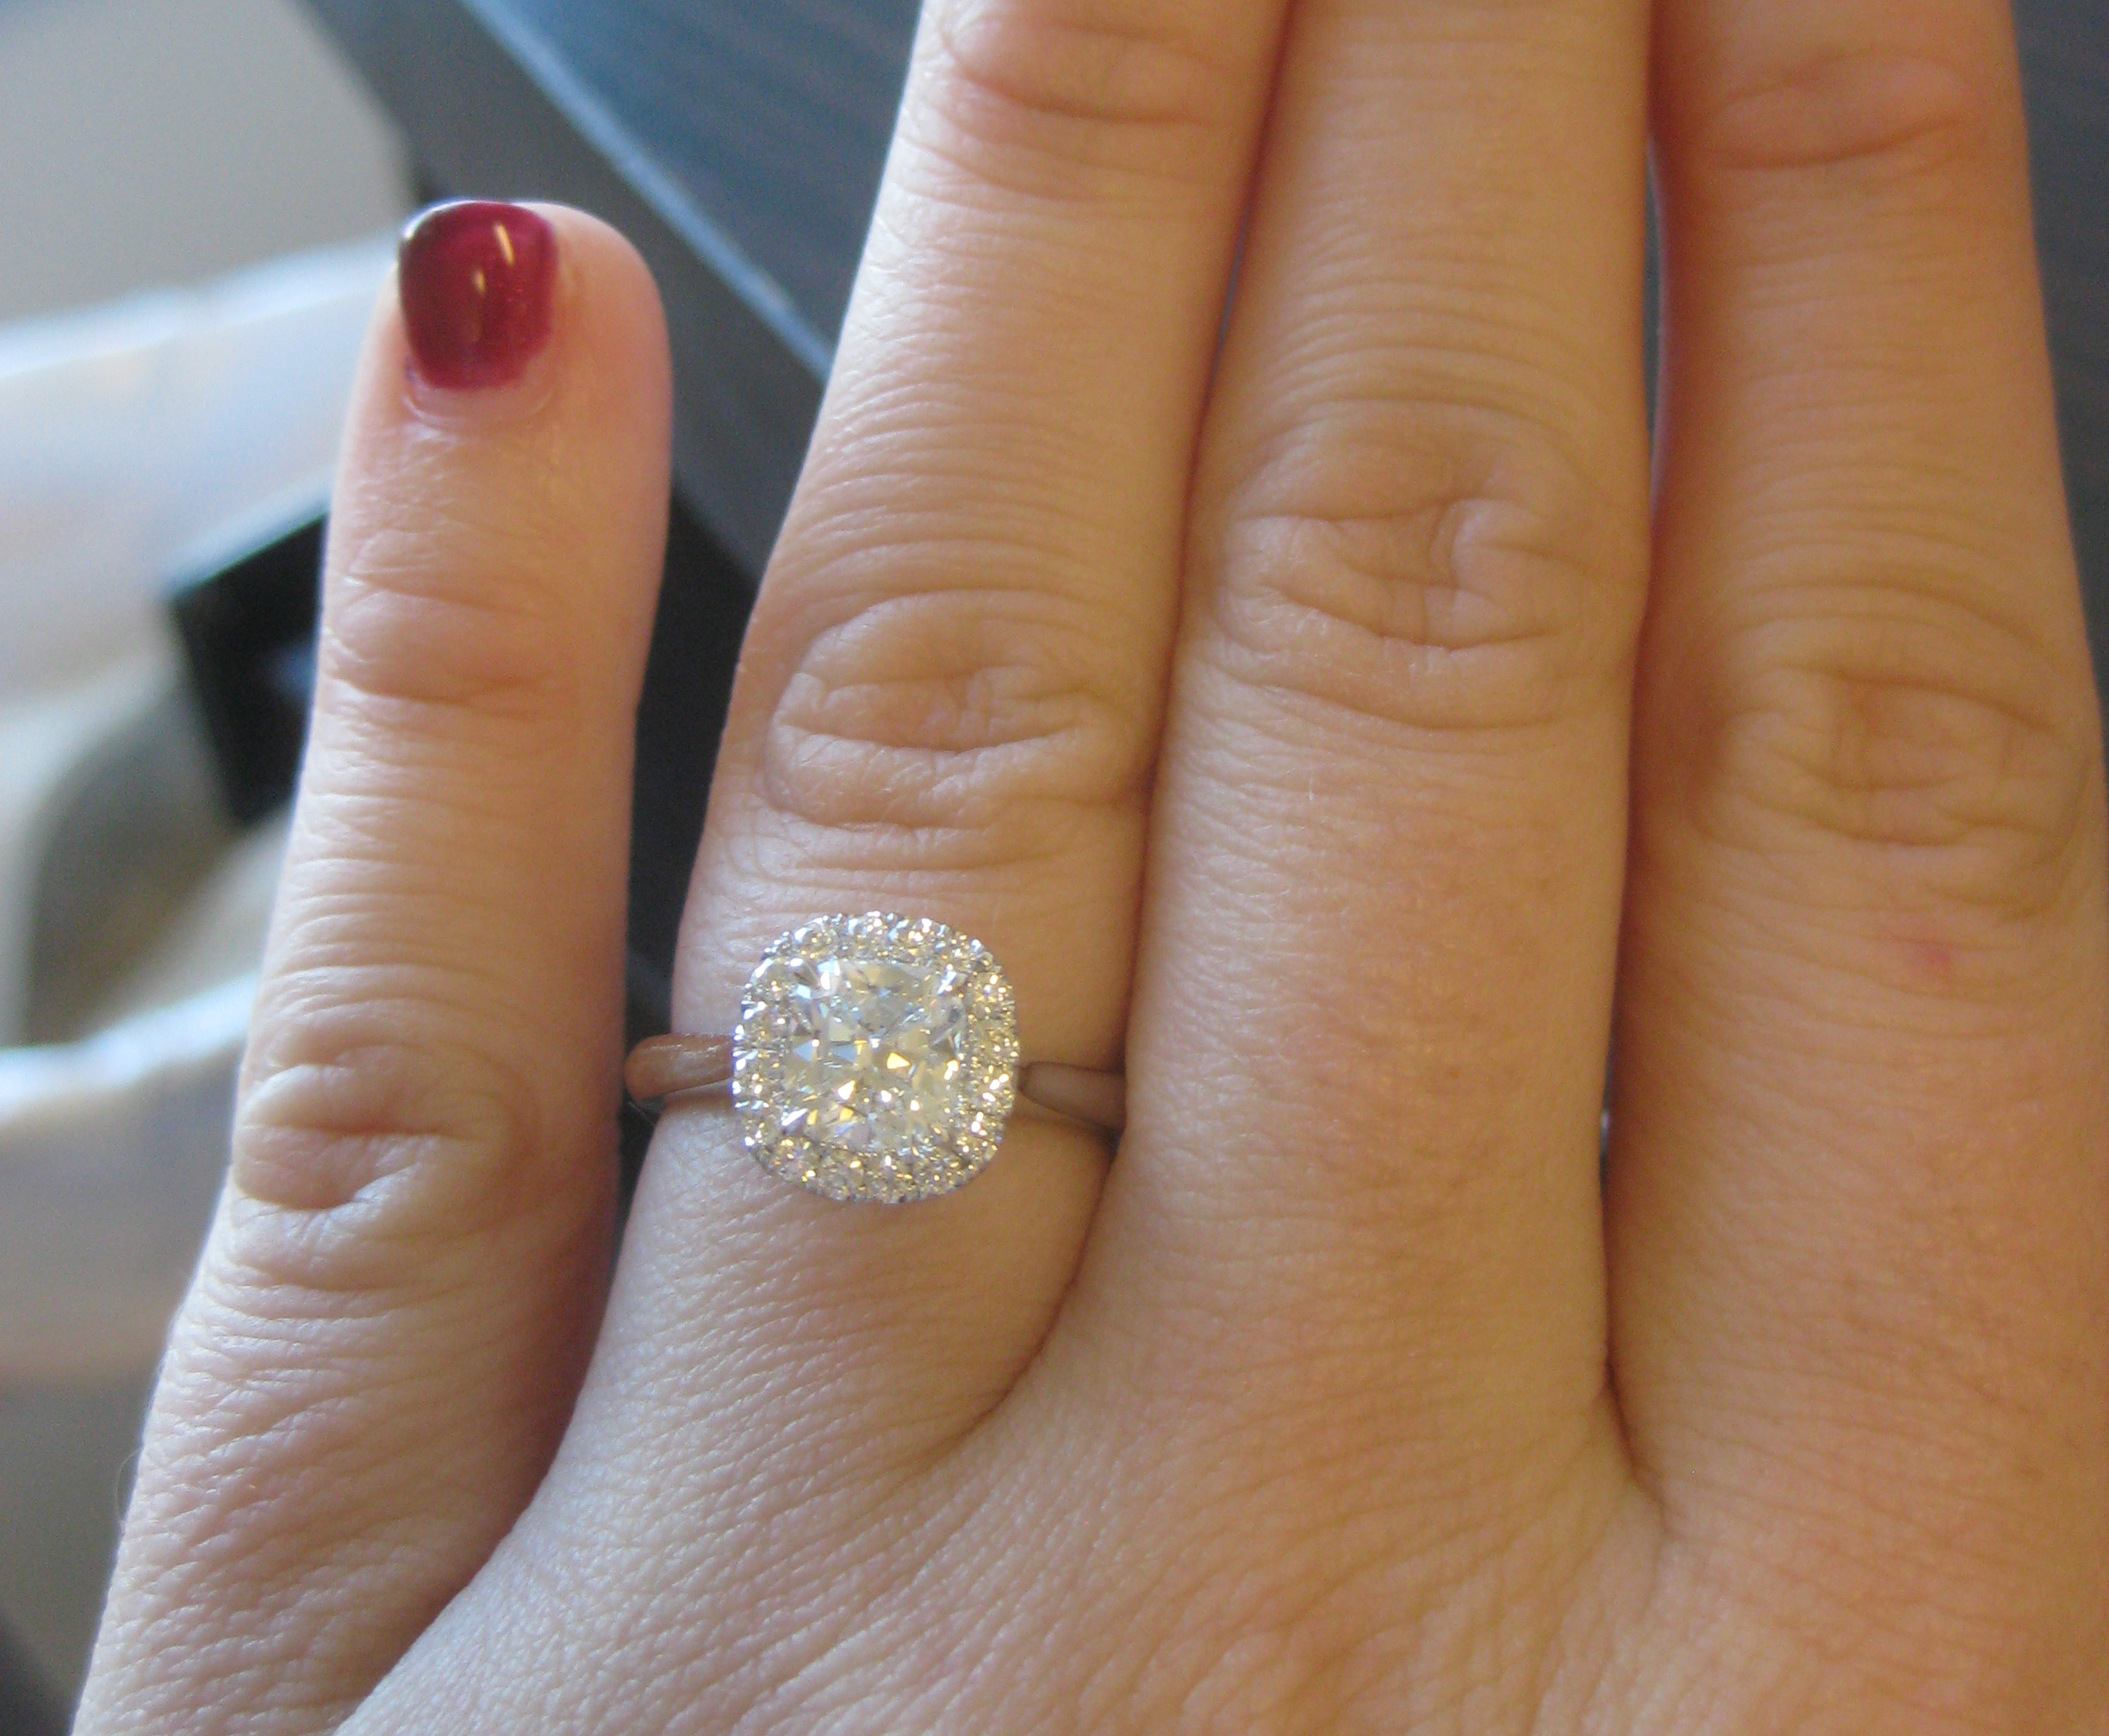 Image 2 of Reader's Rings; Engagement Rings Submitted by You!